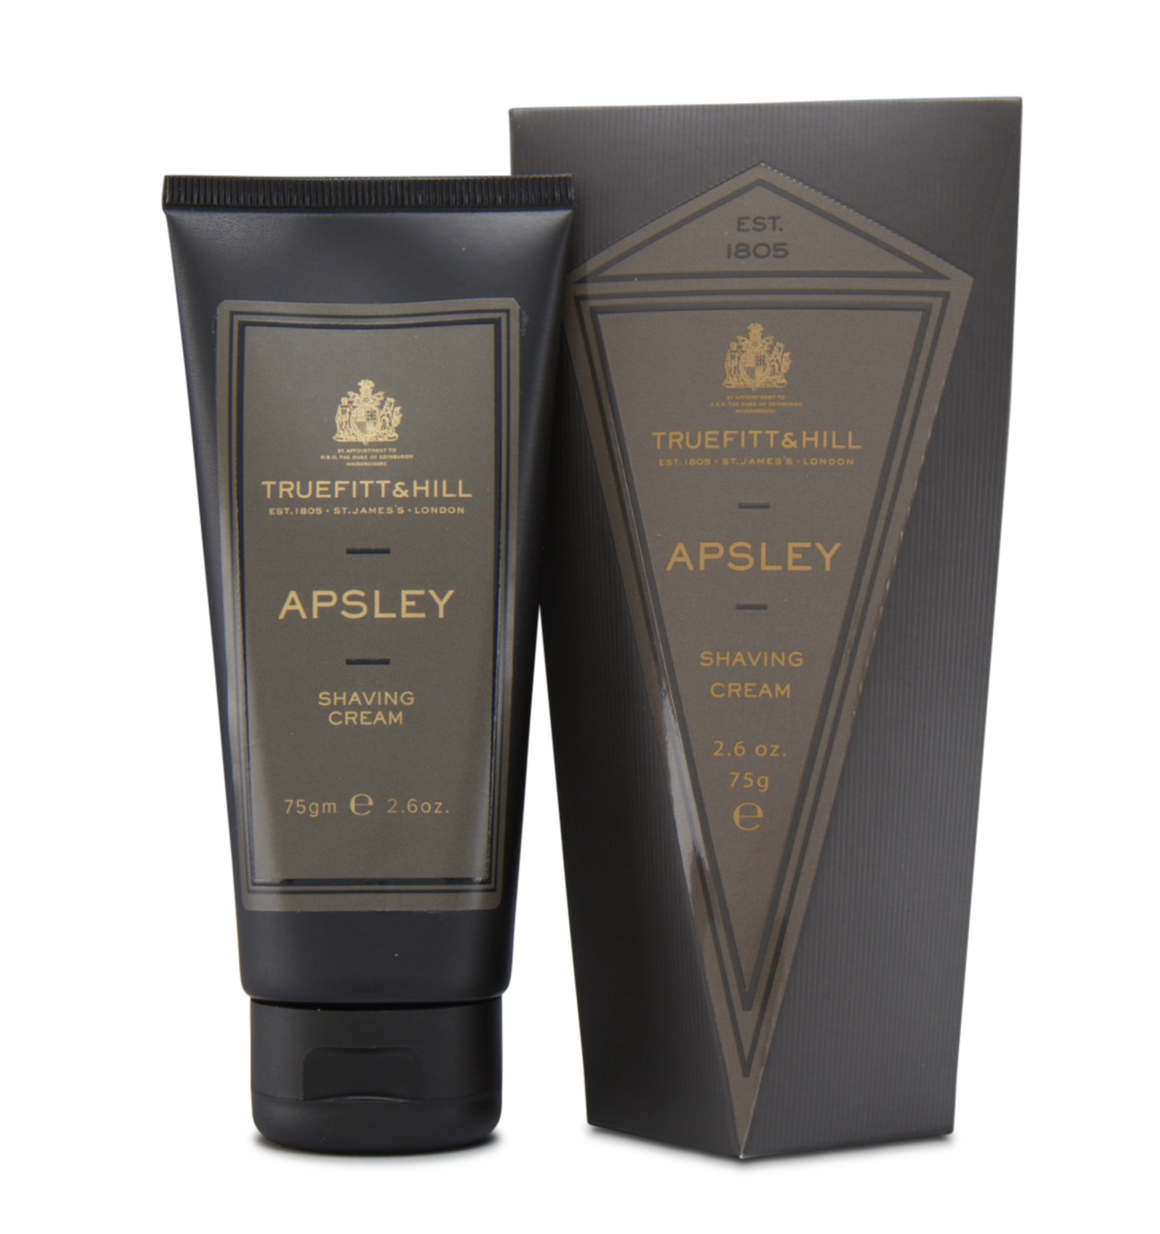 Apsley Shaving Cream Tube - Truefitt & Hill USA